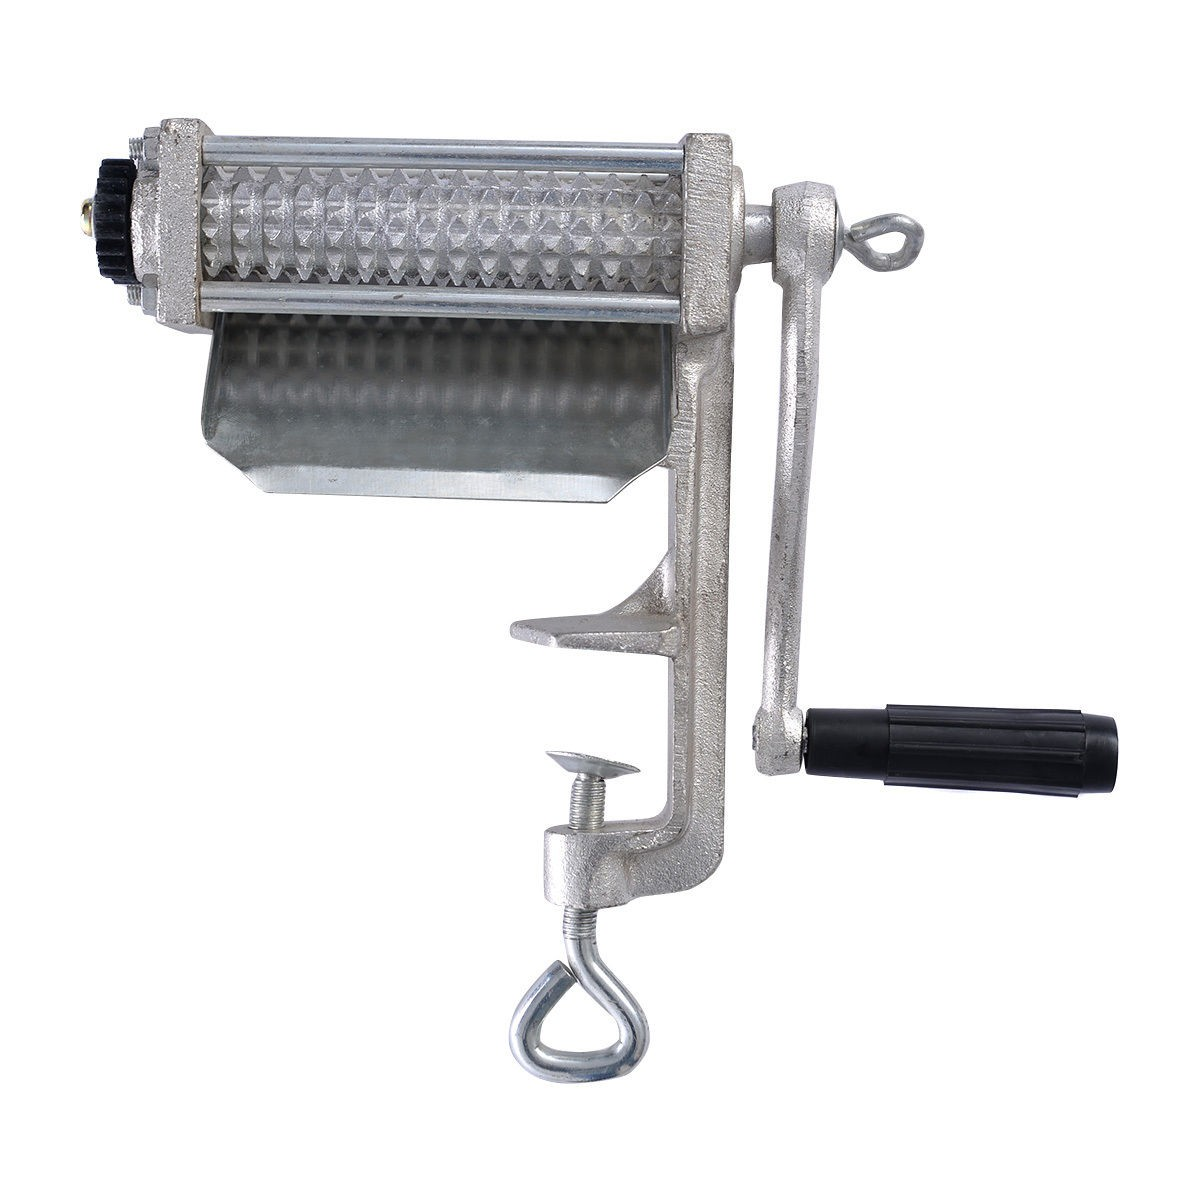 Butchers Kitchen Meat Tenderizer : Commercial Meat Tenderizer Cuber Heavy Duty Steak Flatten Hobart Kitchen Tool US eBay